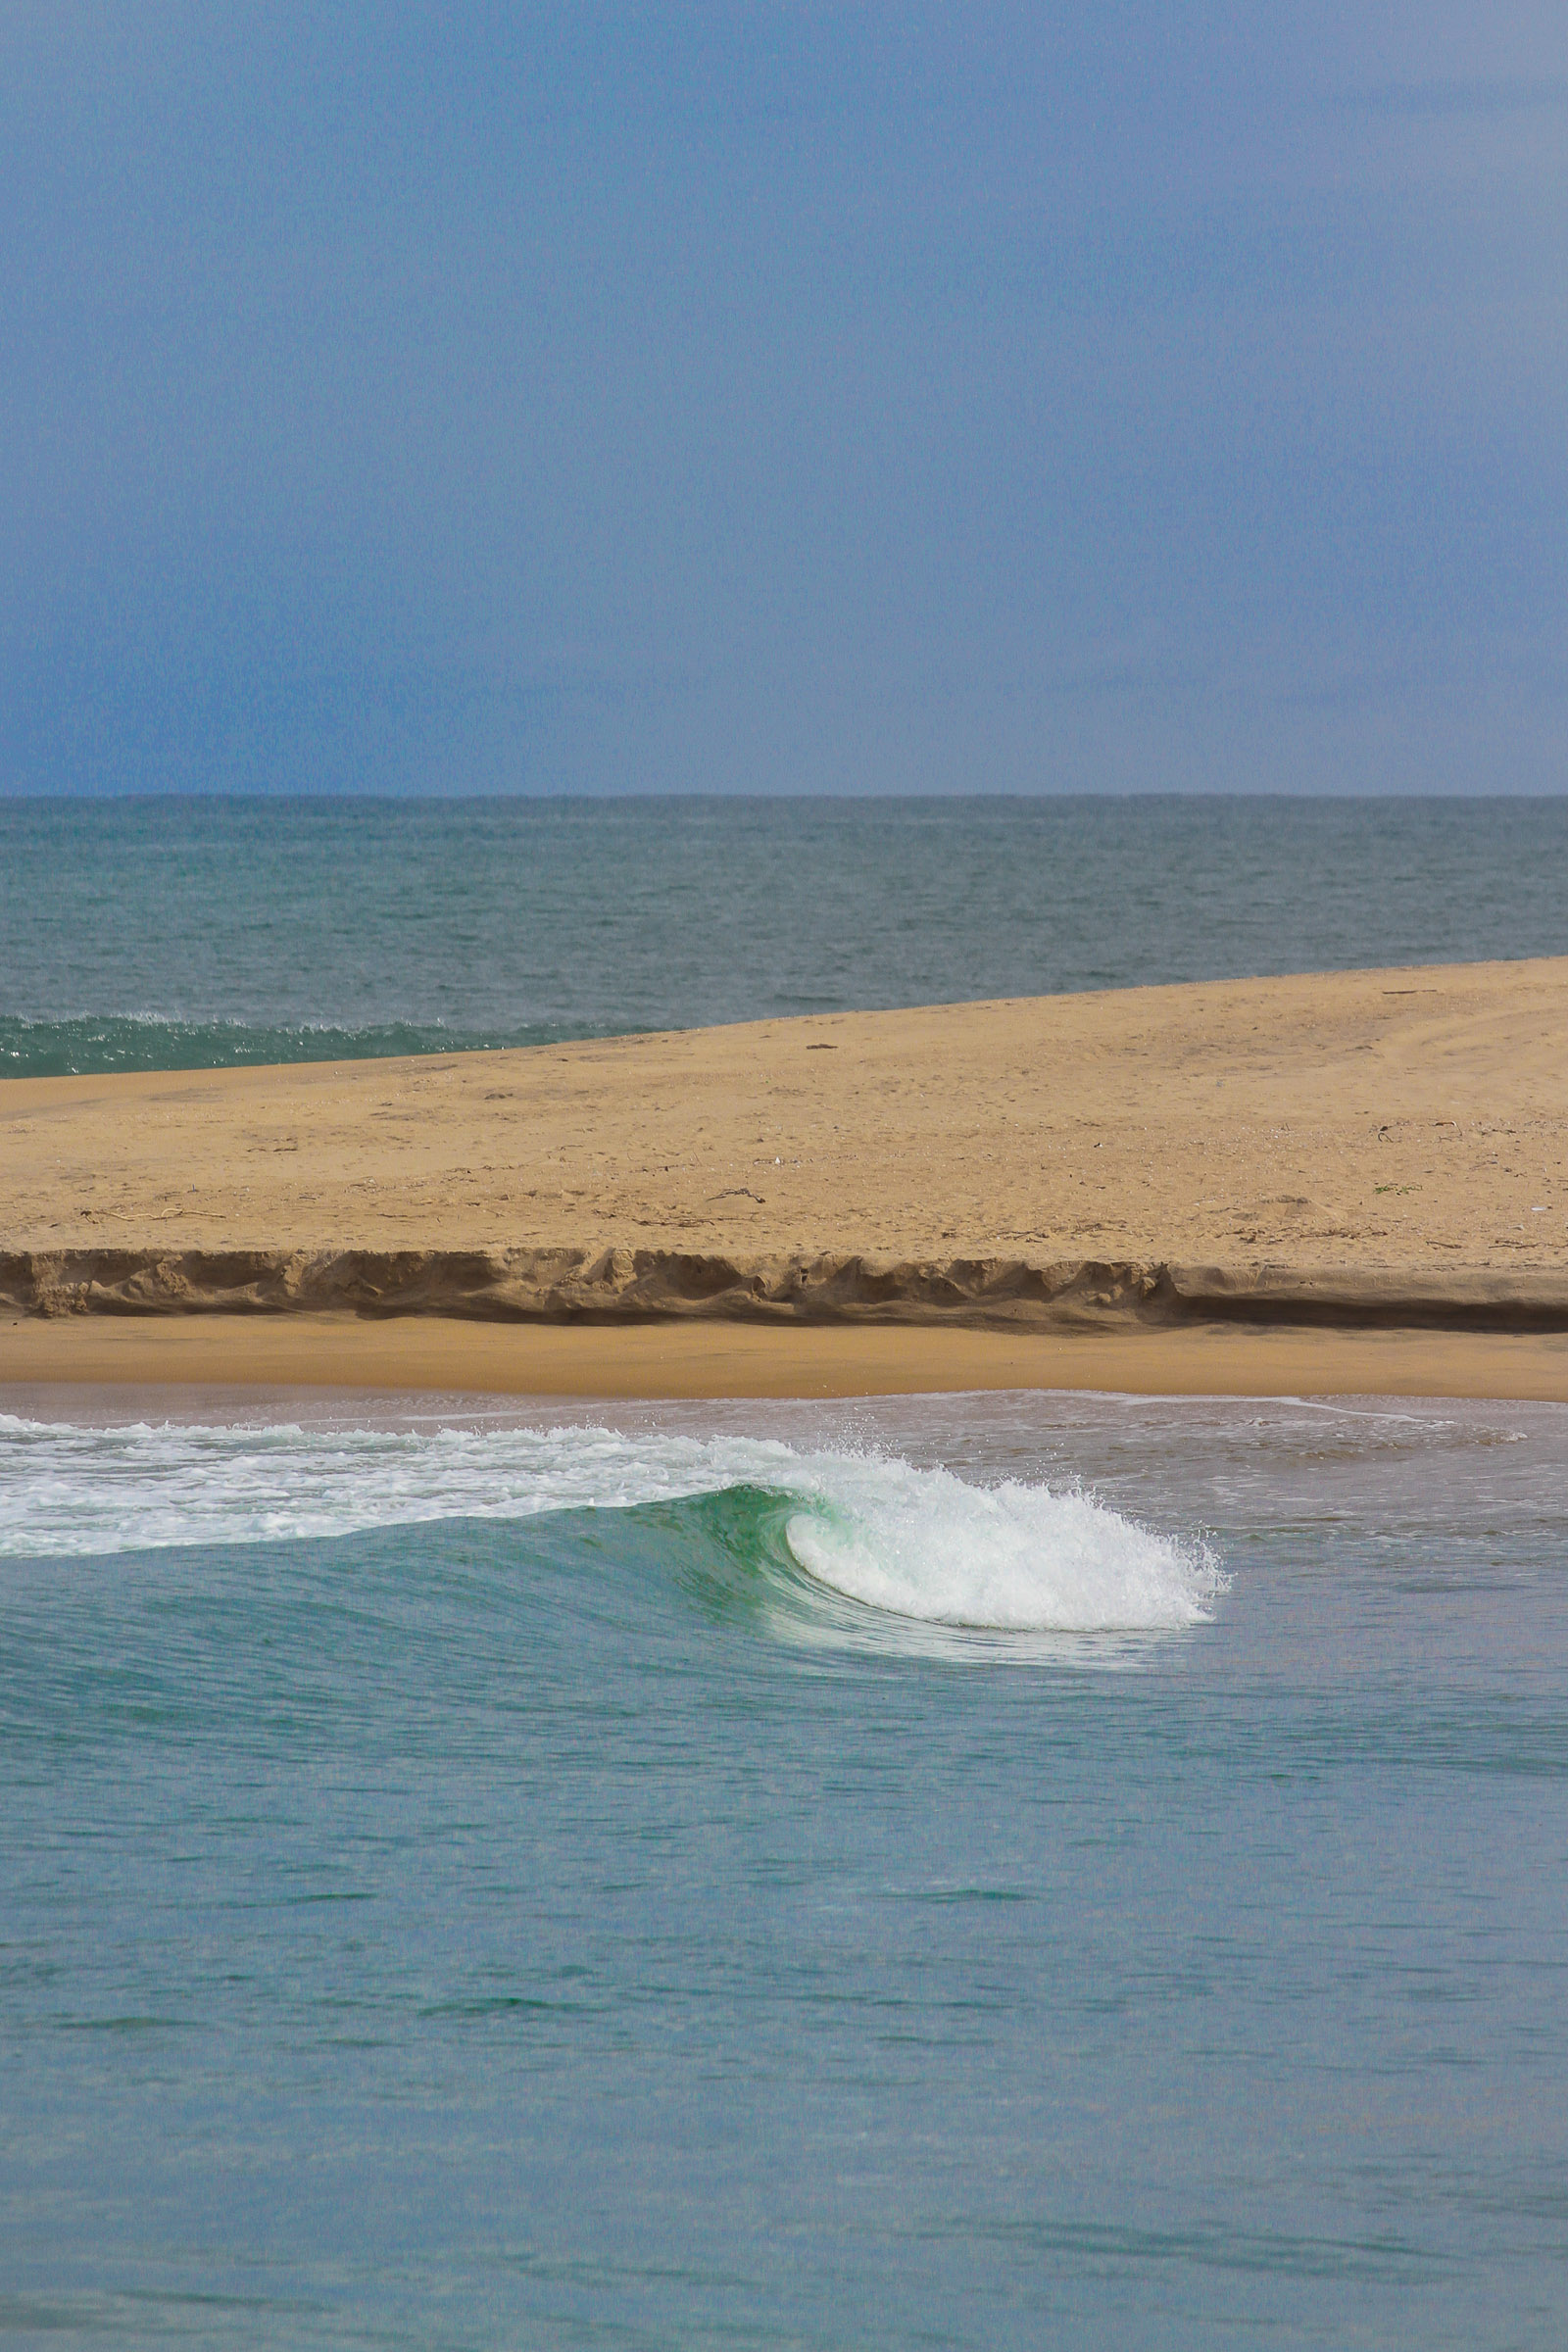 Sri Lanka-Arugam Bay-Surf-Offroad-Jeep-Safari-Surfari-Jungle-Adventure-IMG_2882